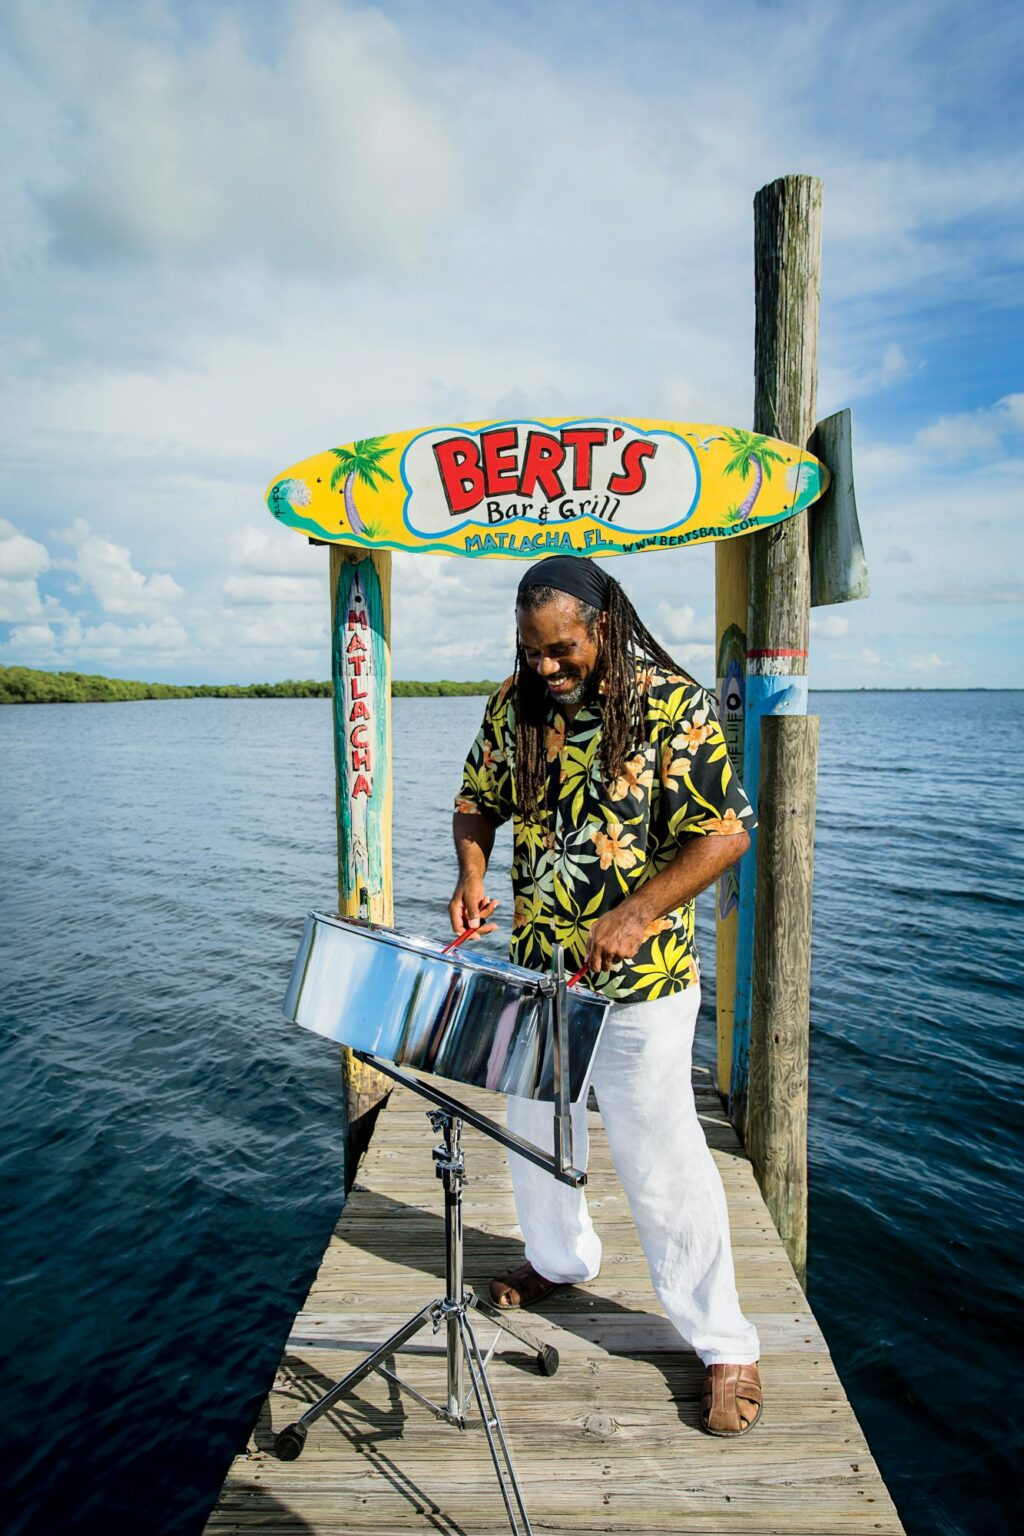 Smiling man plays kettle drum on the dock at Bert's Bar and Grill